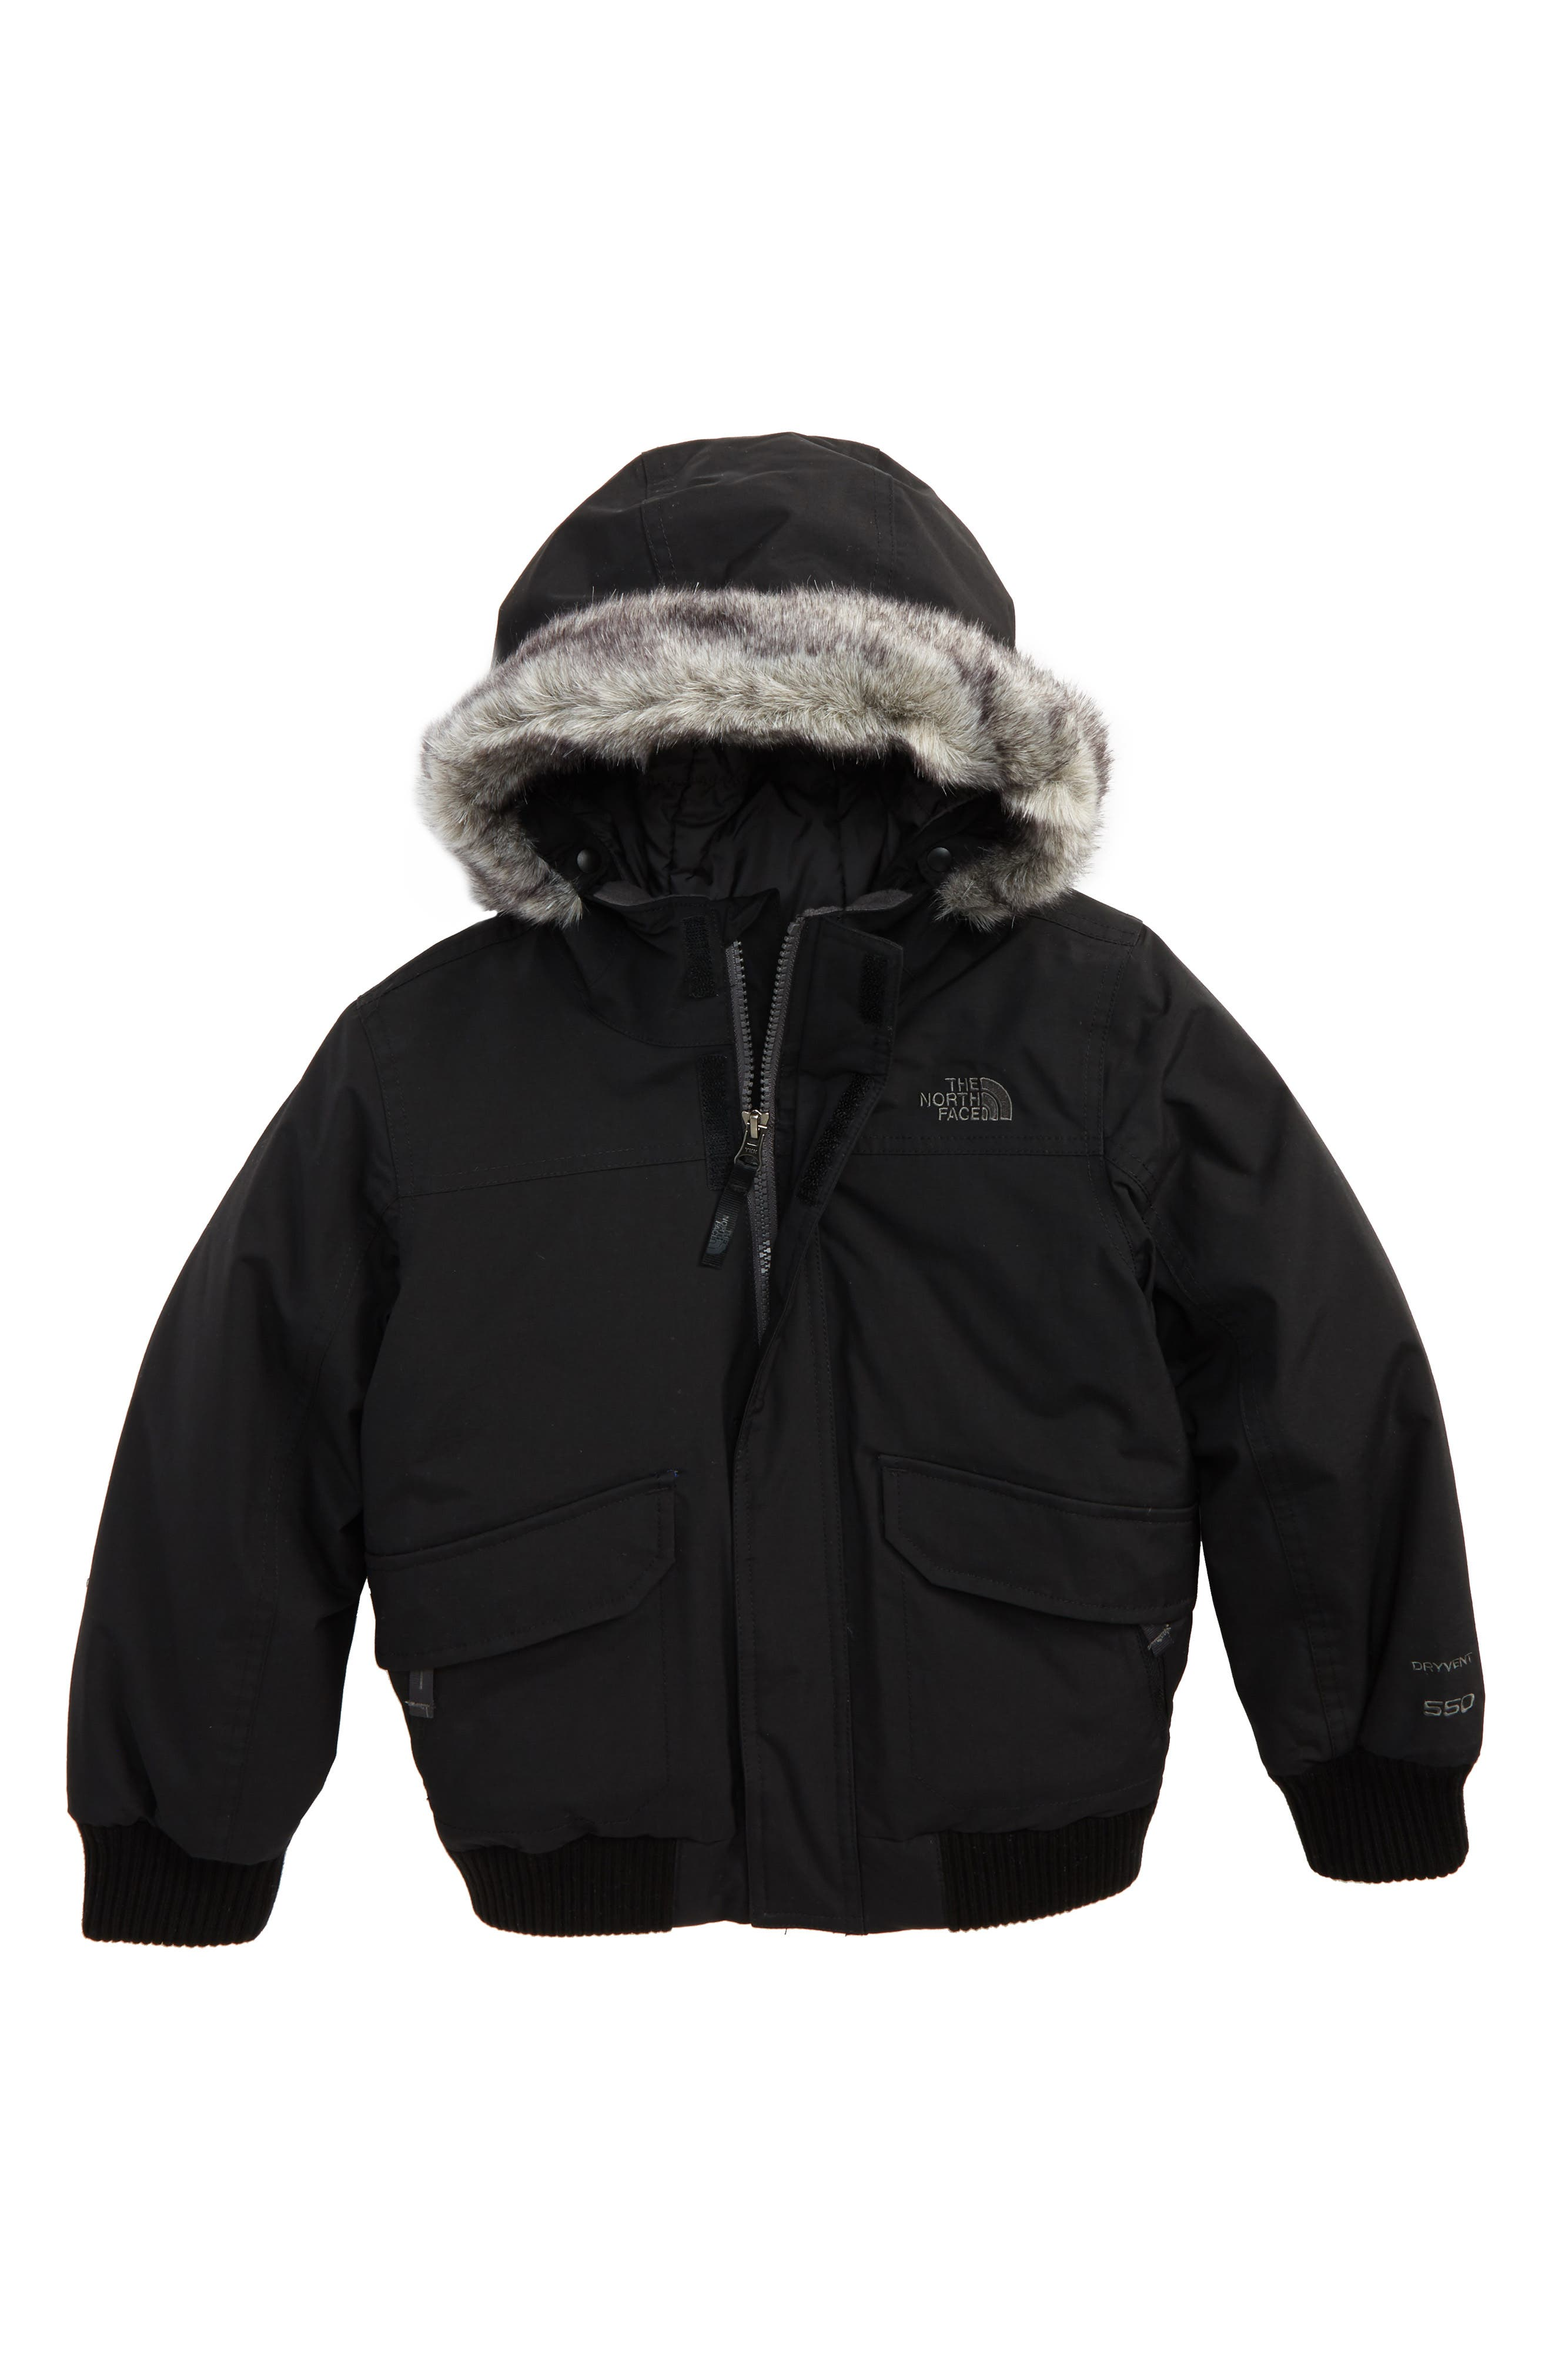 Main Image - The North Face Gotham Hooded Waterproof 550-Fill Power Down Jacket (Toddler Boys & Little Boys)